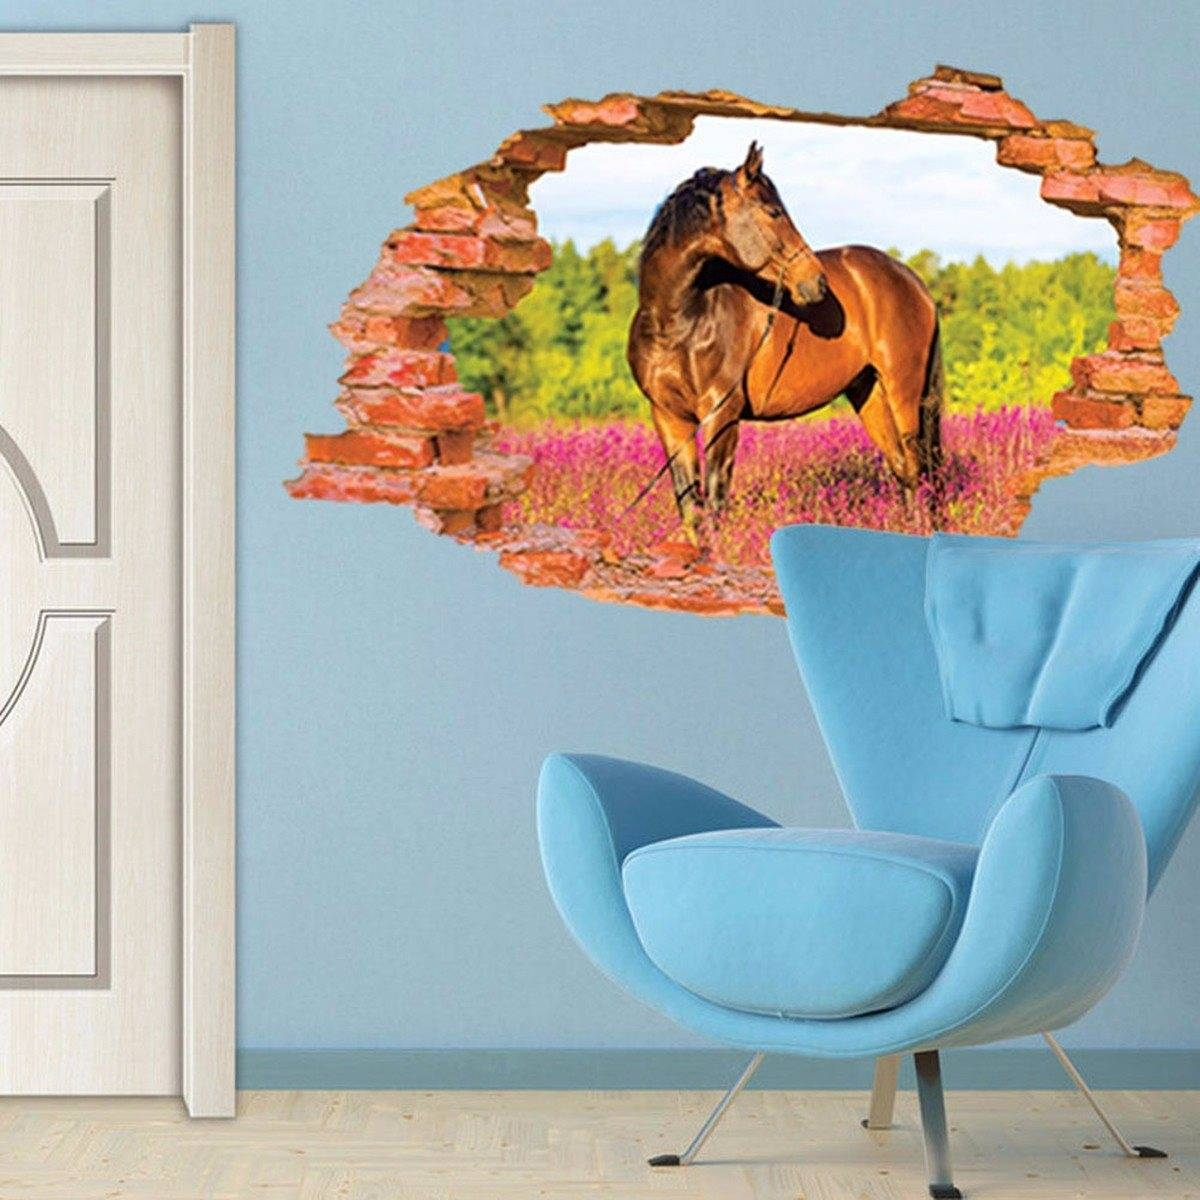 Removable Vinyl 3D Broken Horse Animal Wall Stickers Landscape With Regard To Most Up To Date 3D Animal Wall Art (Gallery 15 of 20)